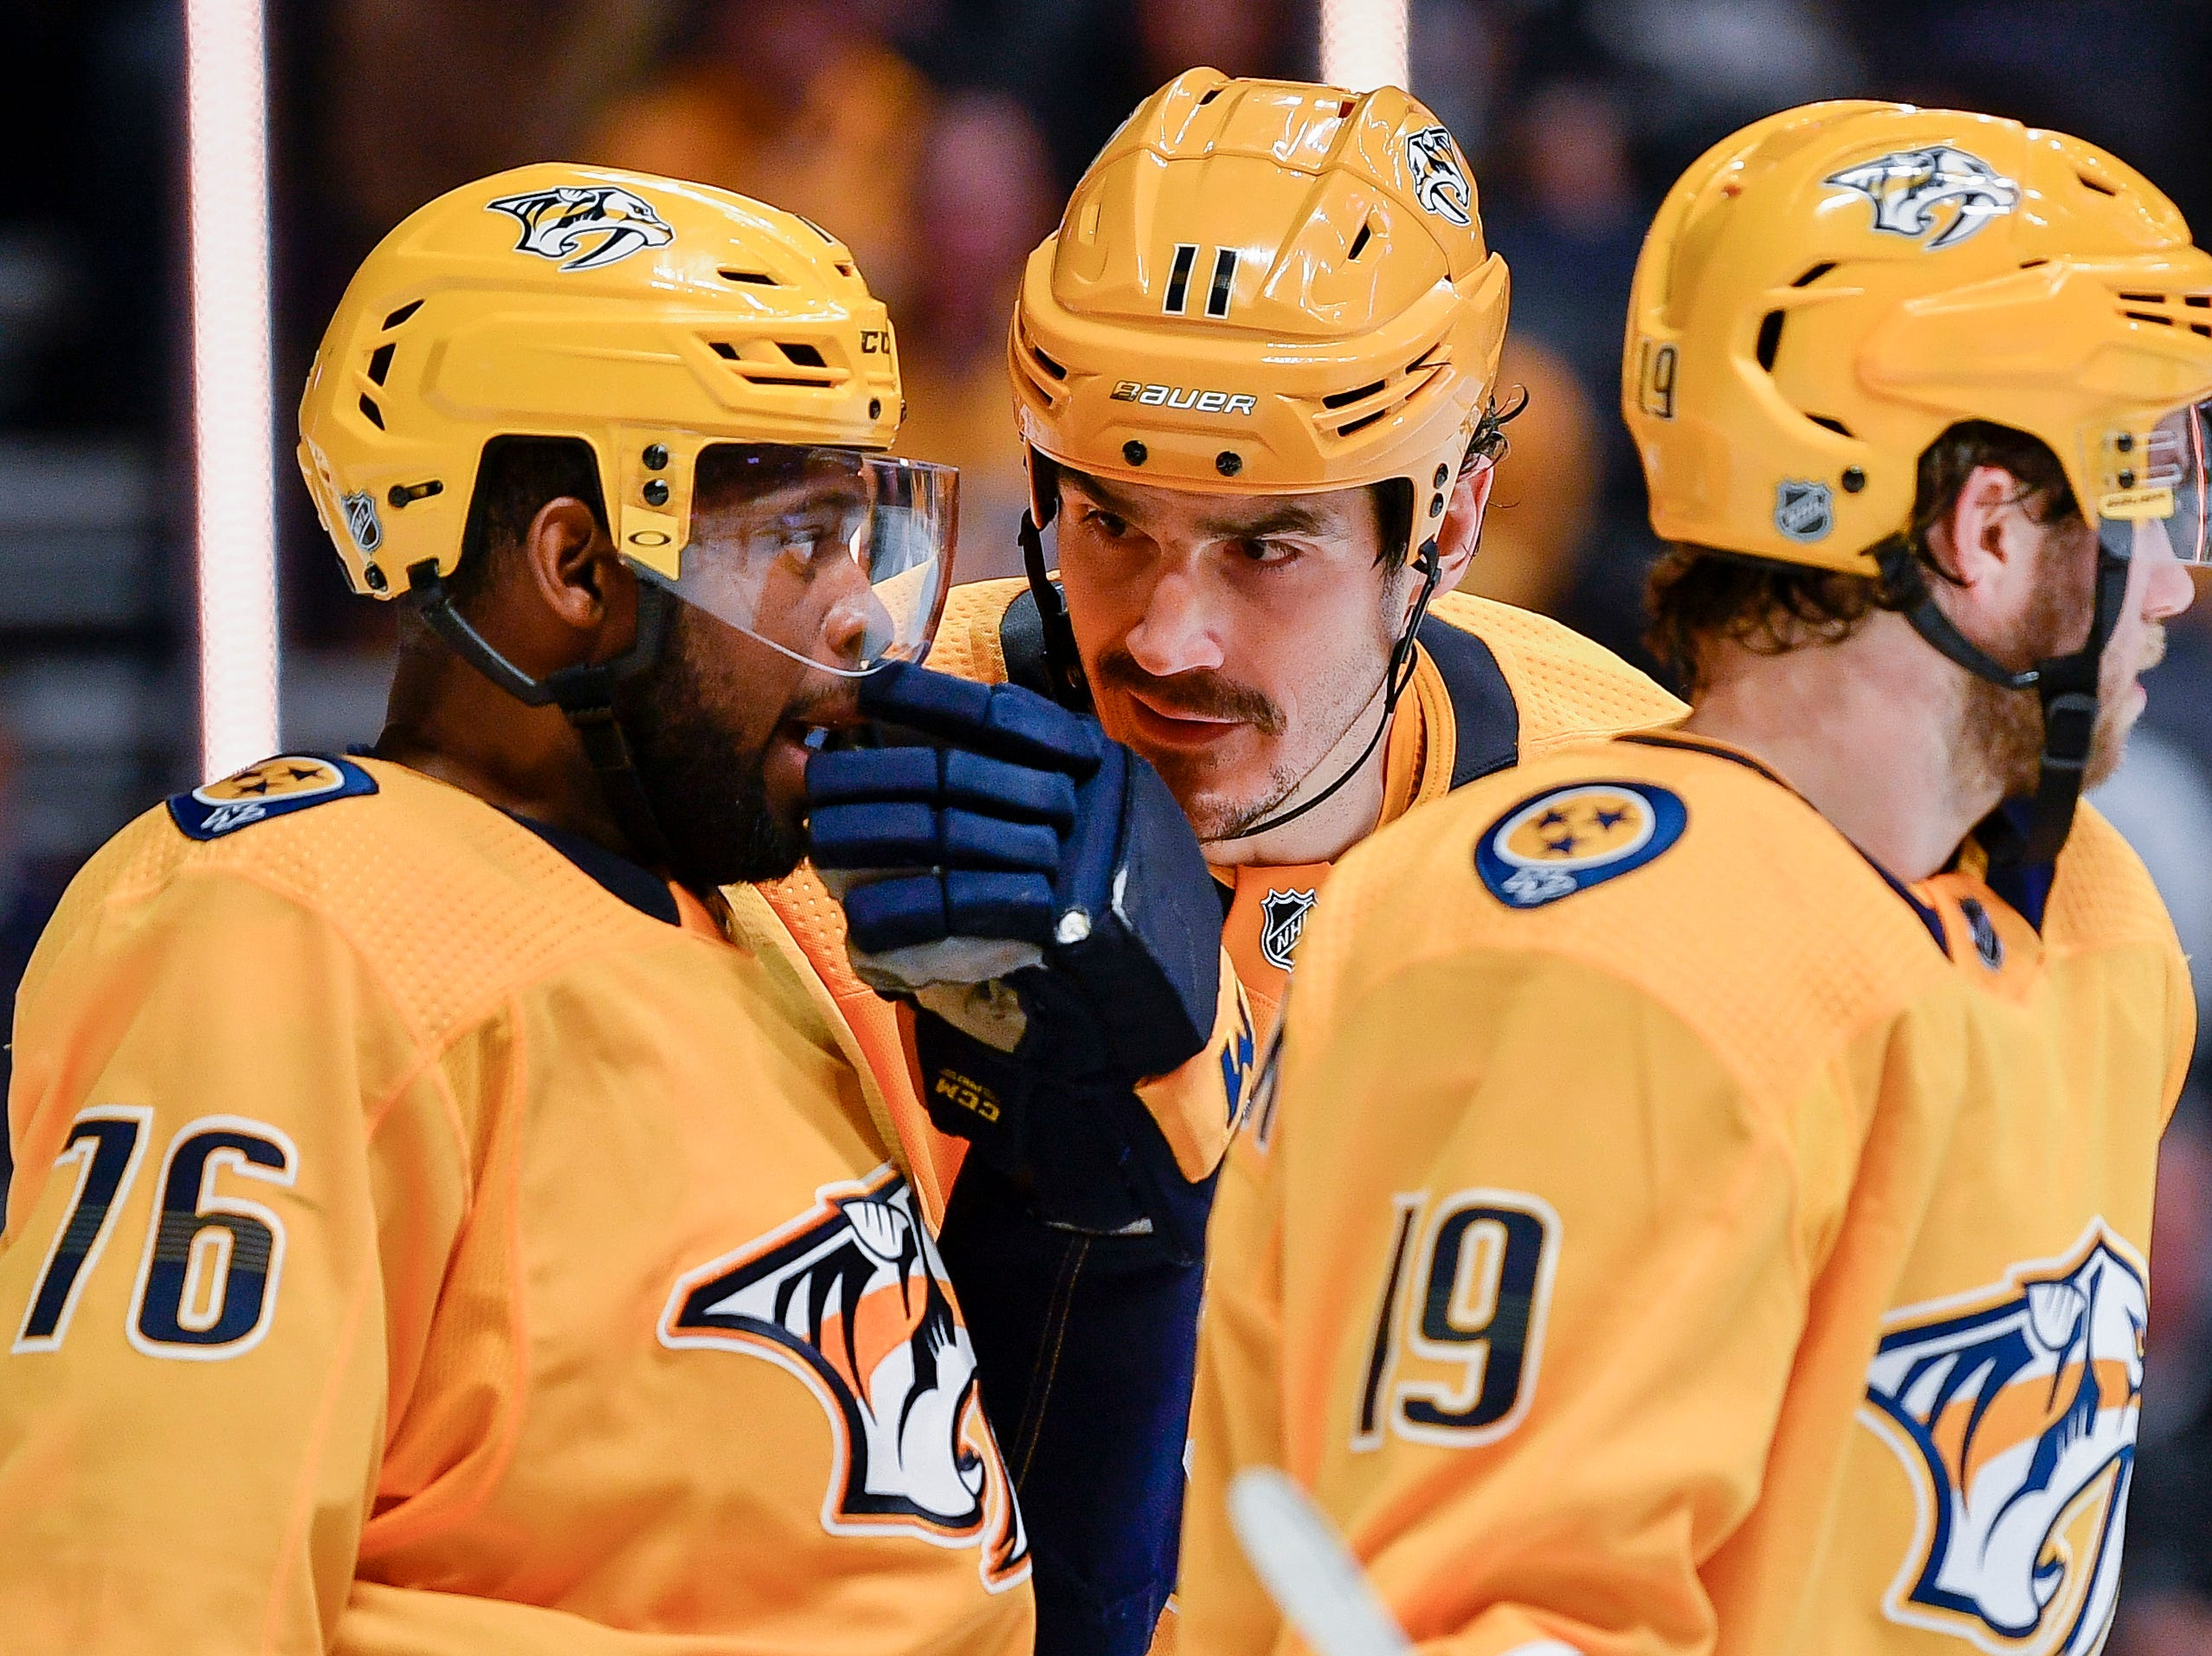 Nashville Predators center Brian Boyle (11) chats with defenseman P.K. Subban (76) during the second period against the Dallas Stars at Bridgestone Arena in Nashville, Tenn., Thursday, Feb. 7, 2019.